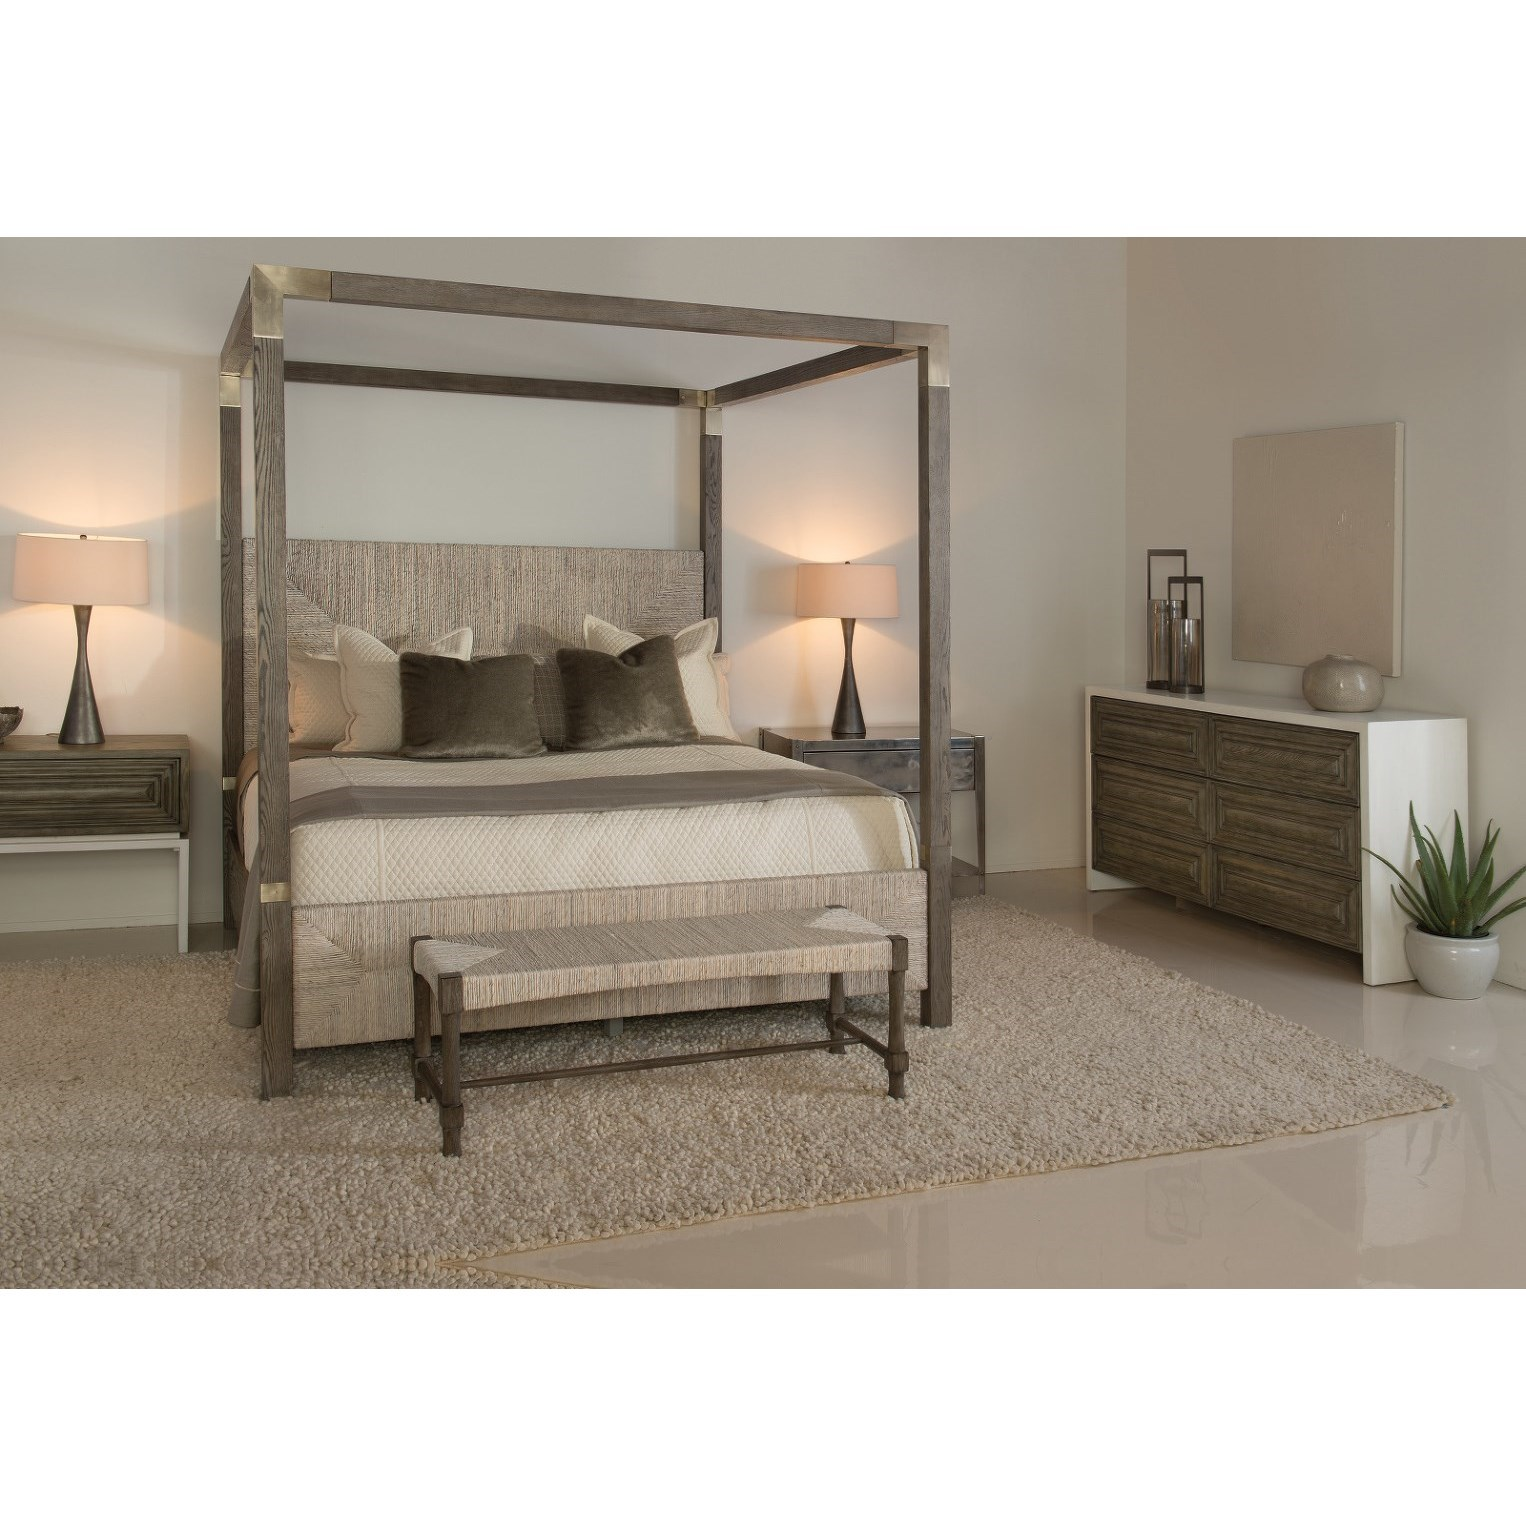 Bench By Bed: Bernhardt Palma Woven Abaca Bed Bench